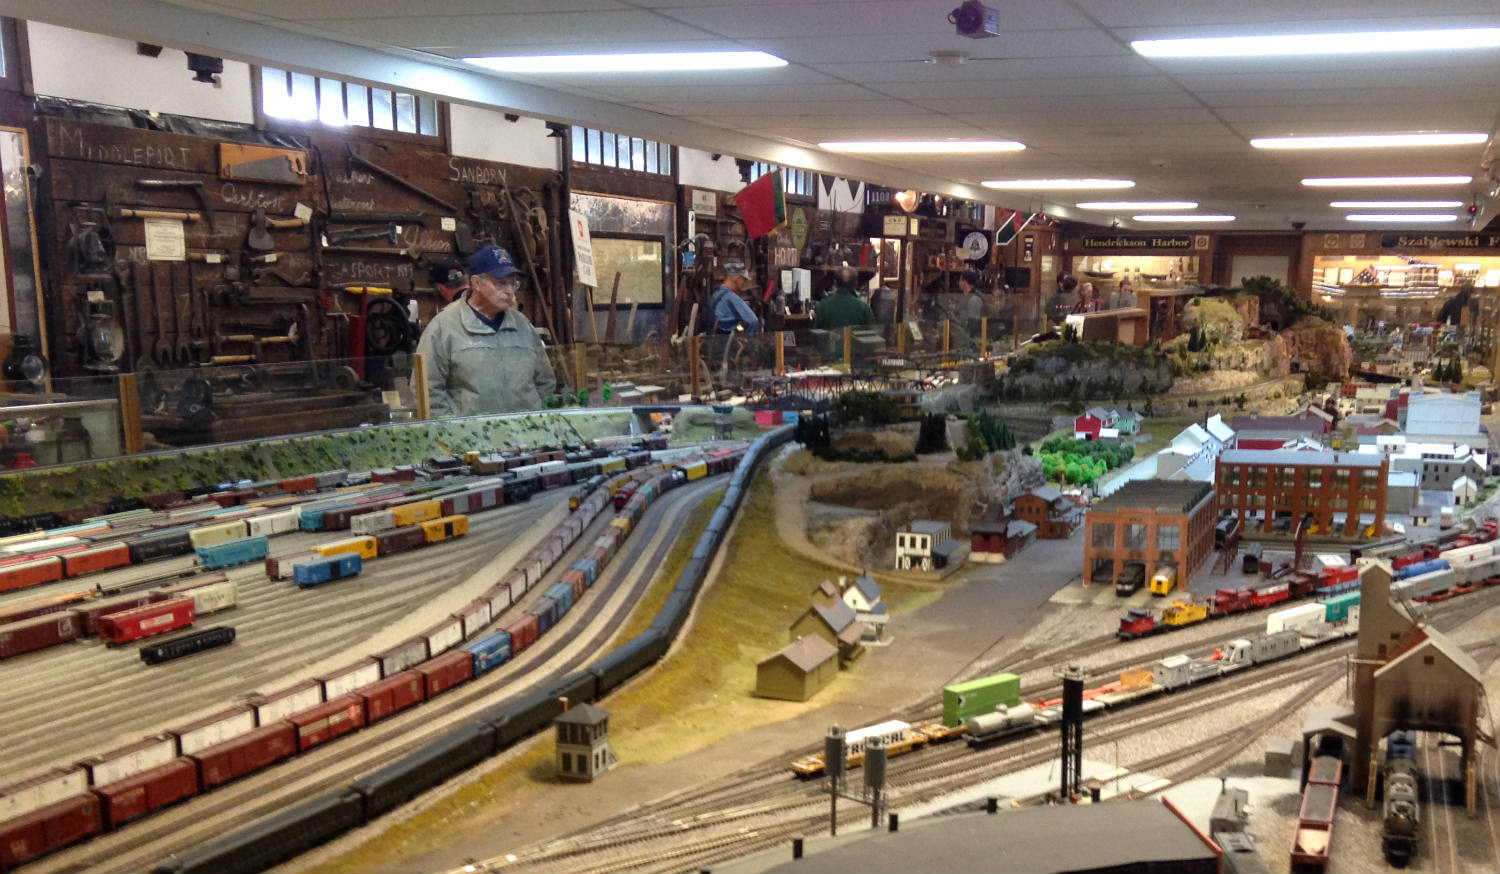 Man and Model Railroad at Medina Railroad Museum in Medina, NY